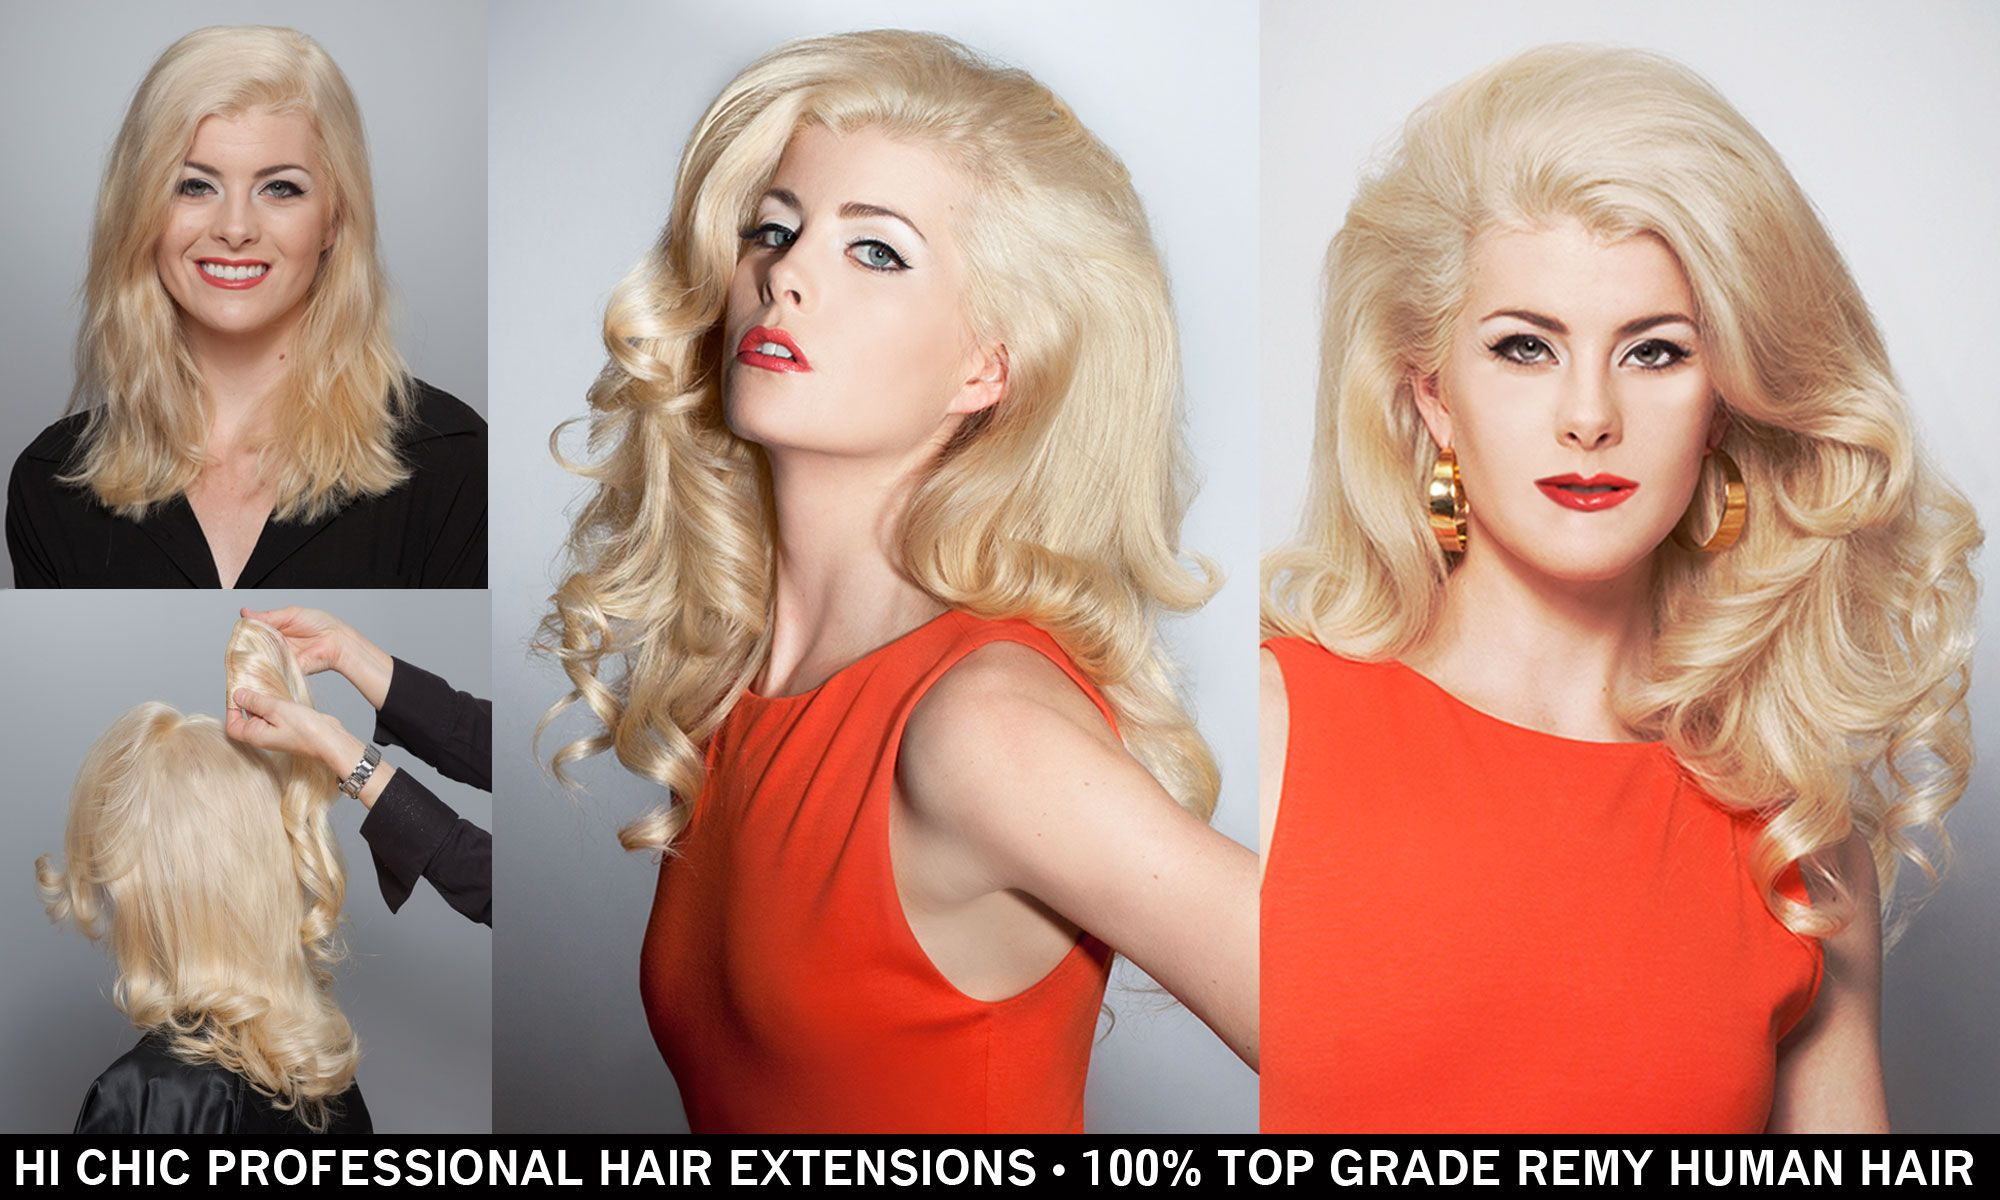 Professional extensions make all the difference hair is longer